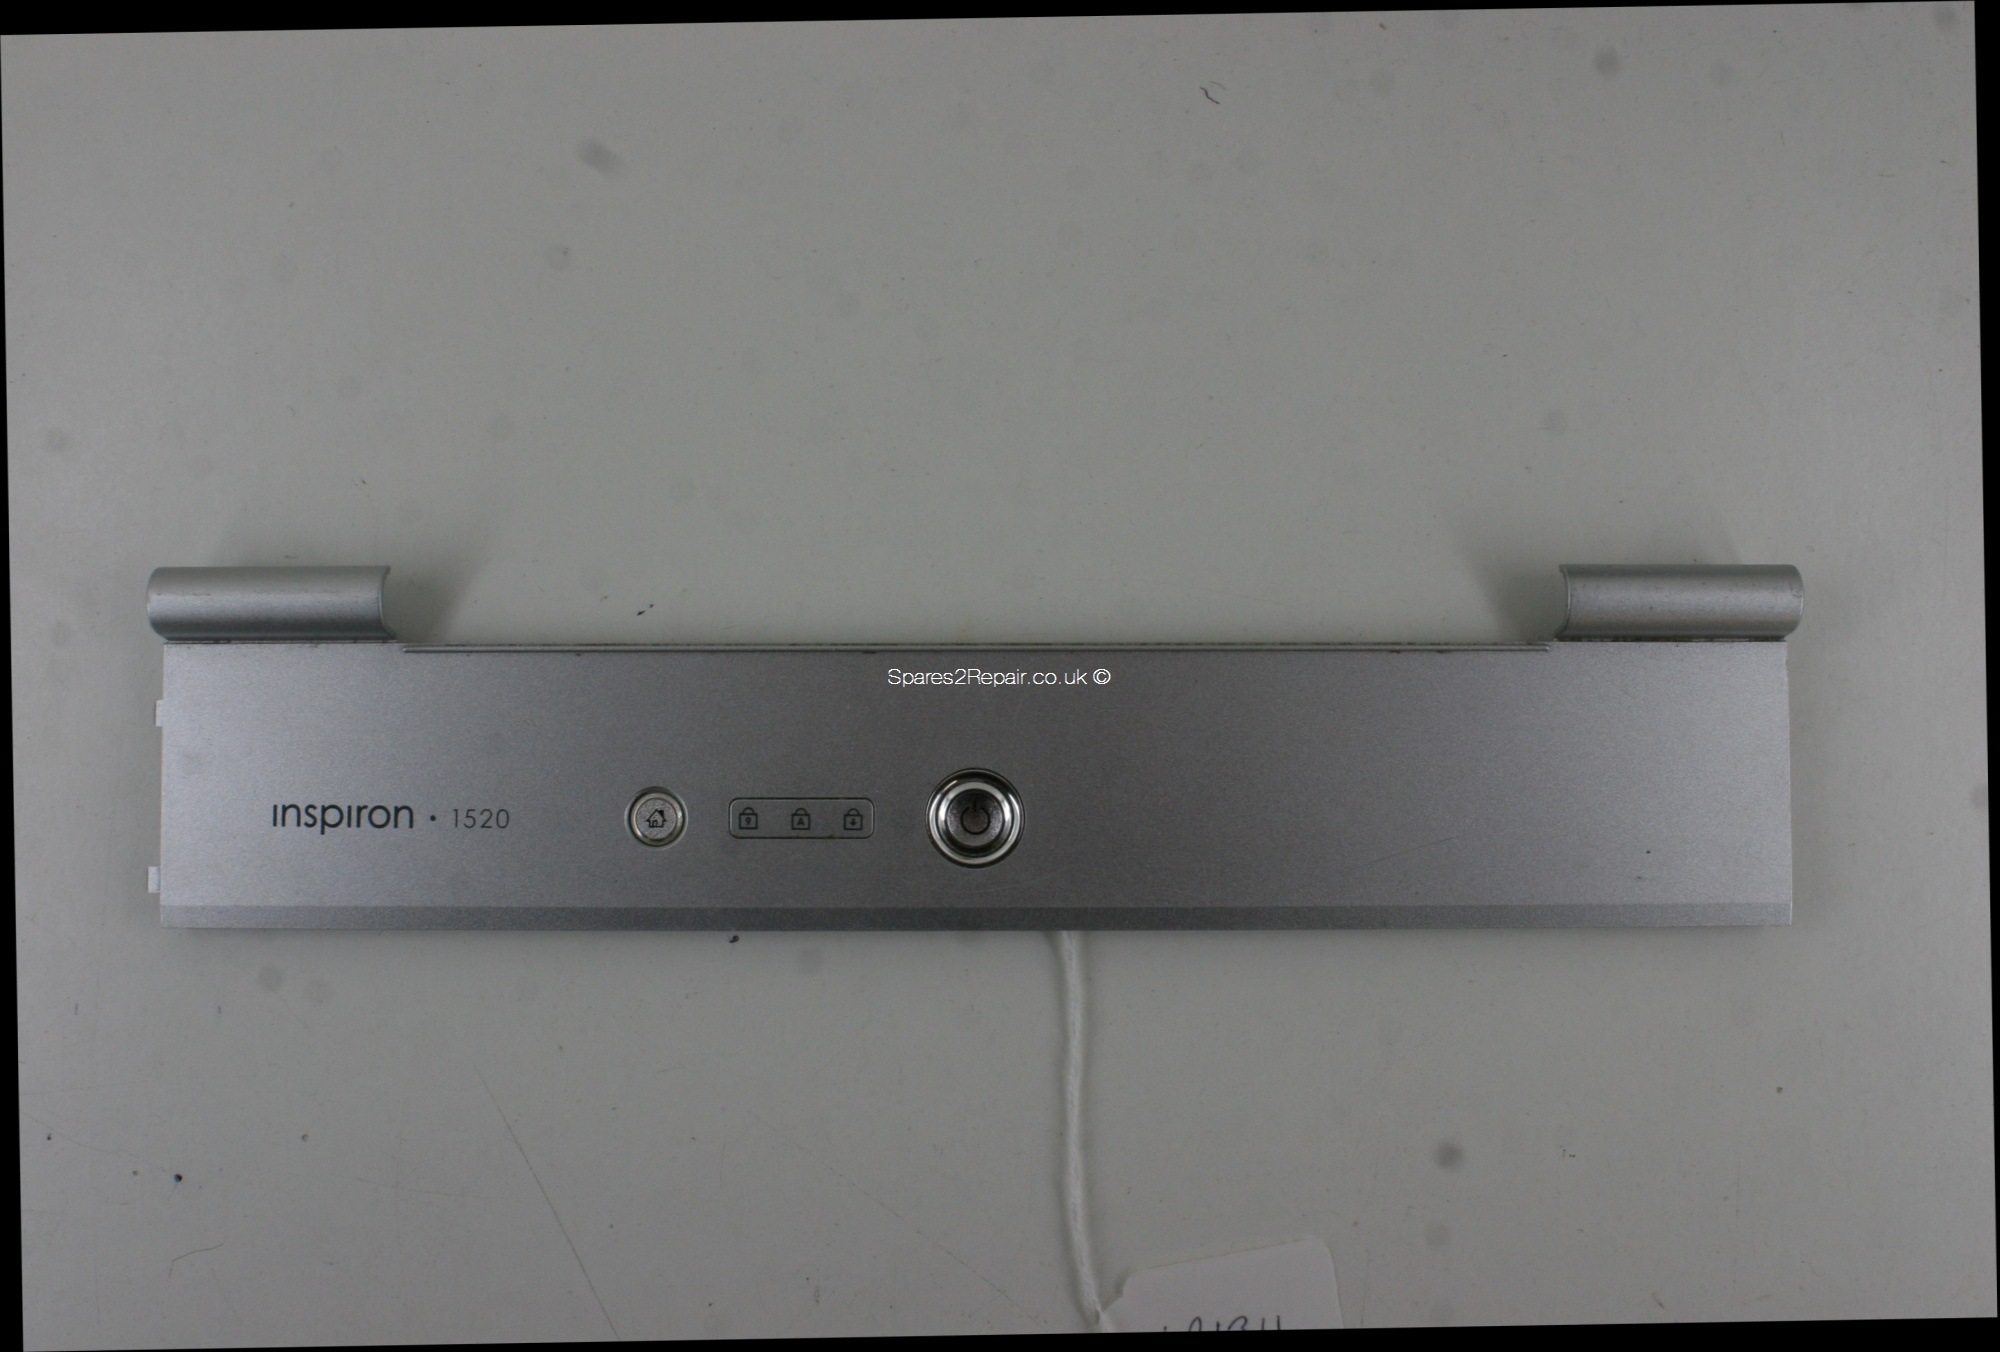 Dell Inspiron 1520 - Power Panel - 27FM5HGWI07 - REV:3A